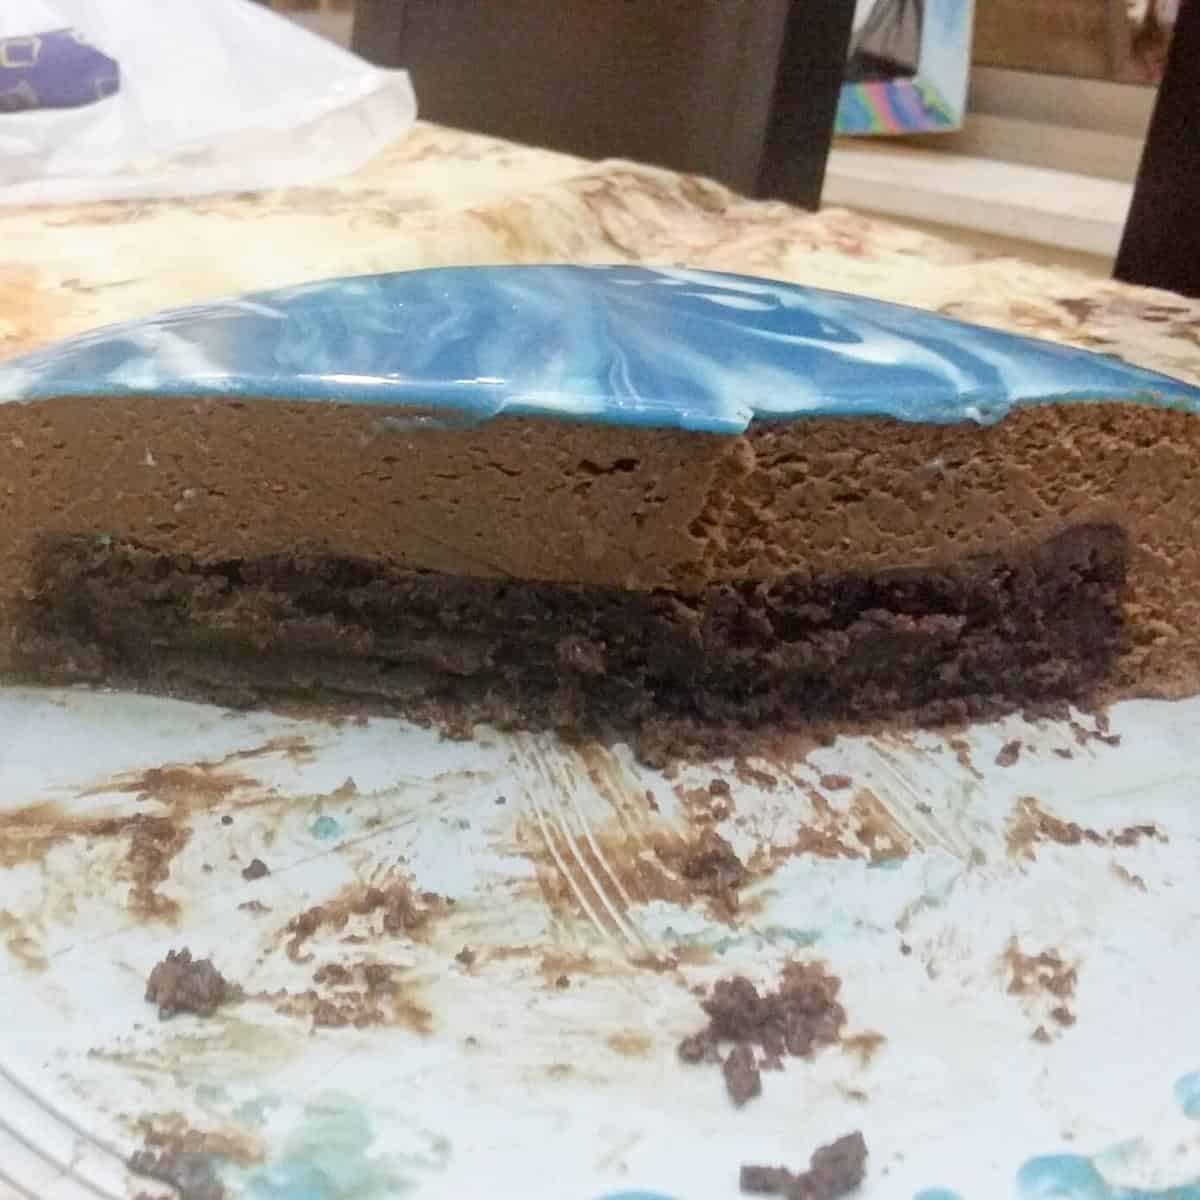 Mousse cake with mirror glaze on cake board.